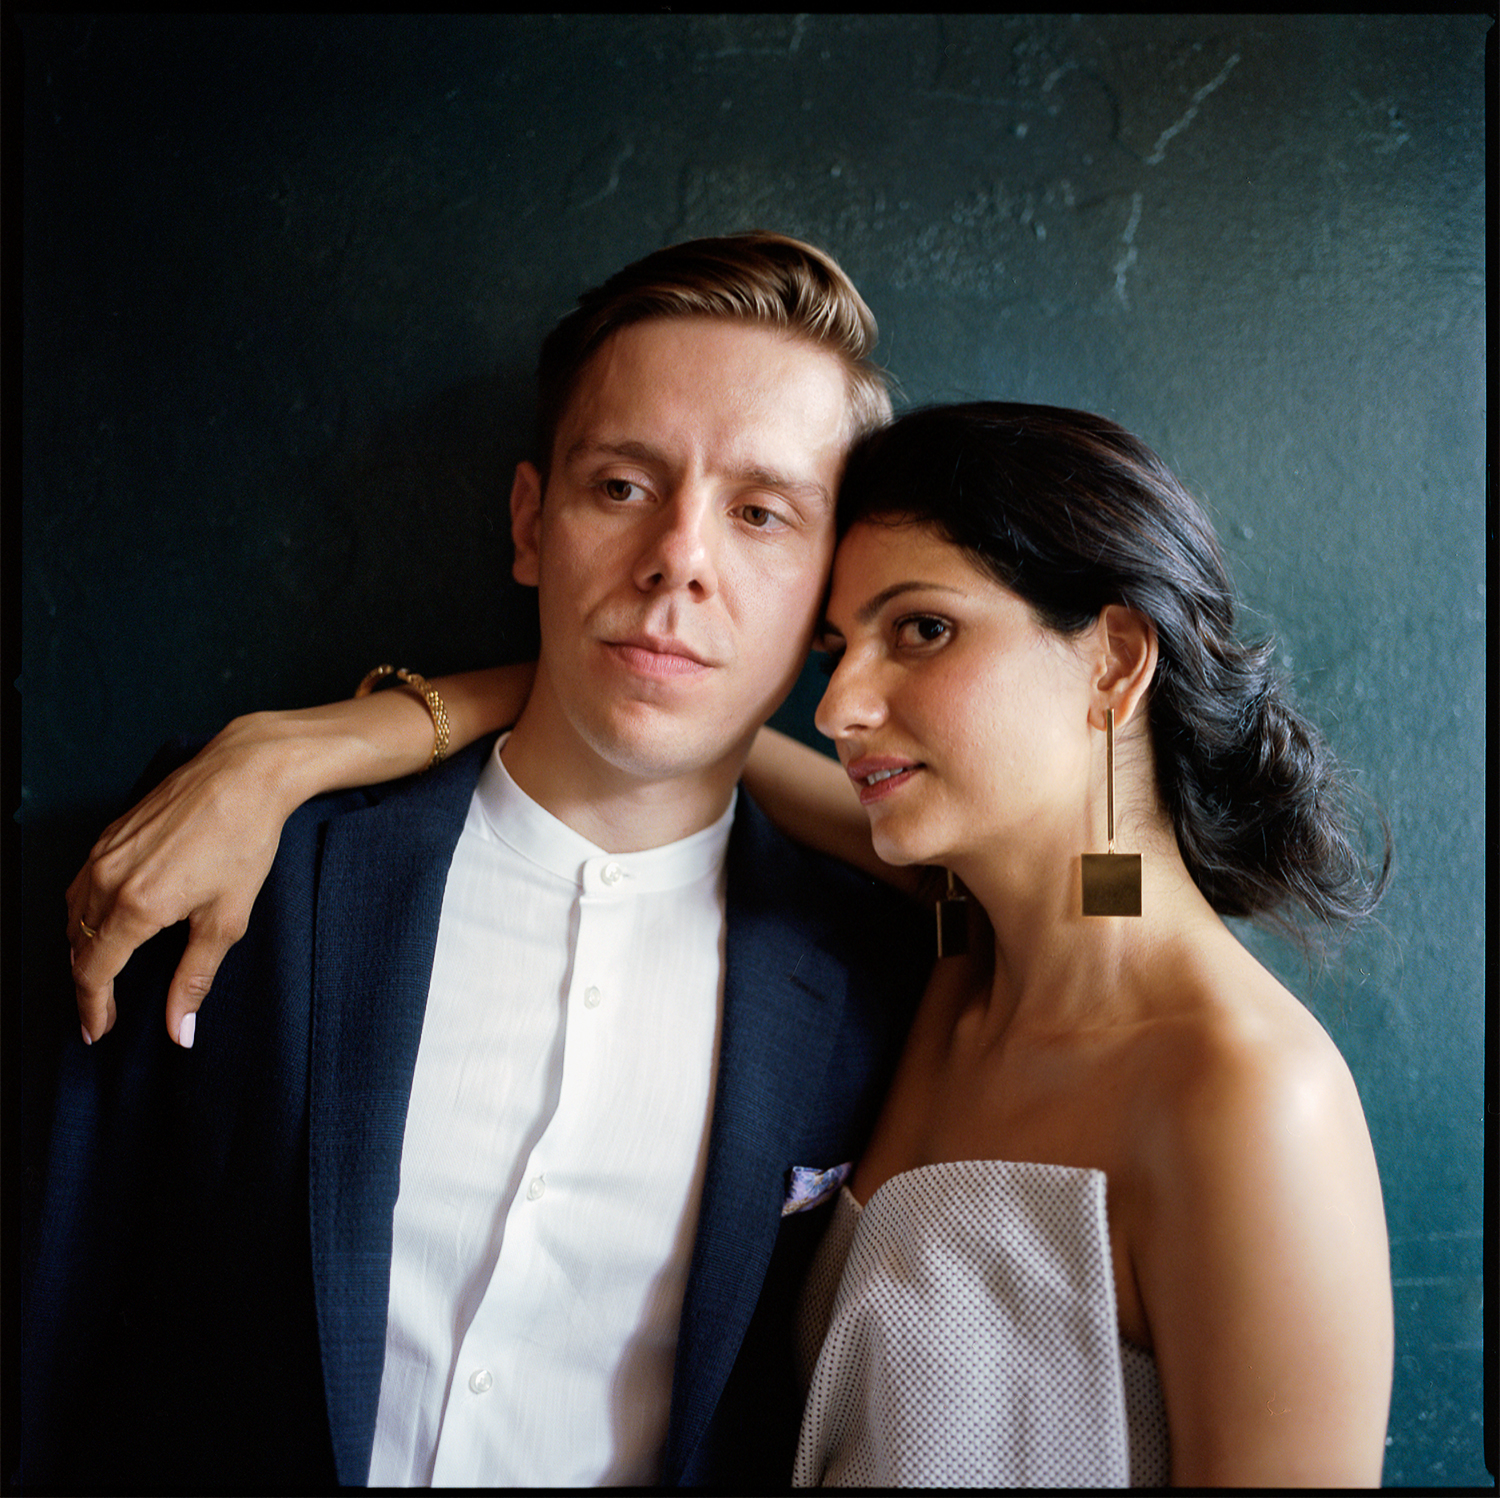 Best-Documentary-Wedding-Photographers-Toronto-Analog-Film-Photographer-Downtown-Kensington-Market-City-Bride-Bridal-Jumpsuit-Style-Fuji-Pro-400h-6x6-Portrait-of-bride-and-groom-timeless.jpg